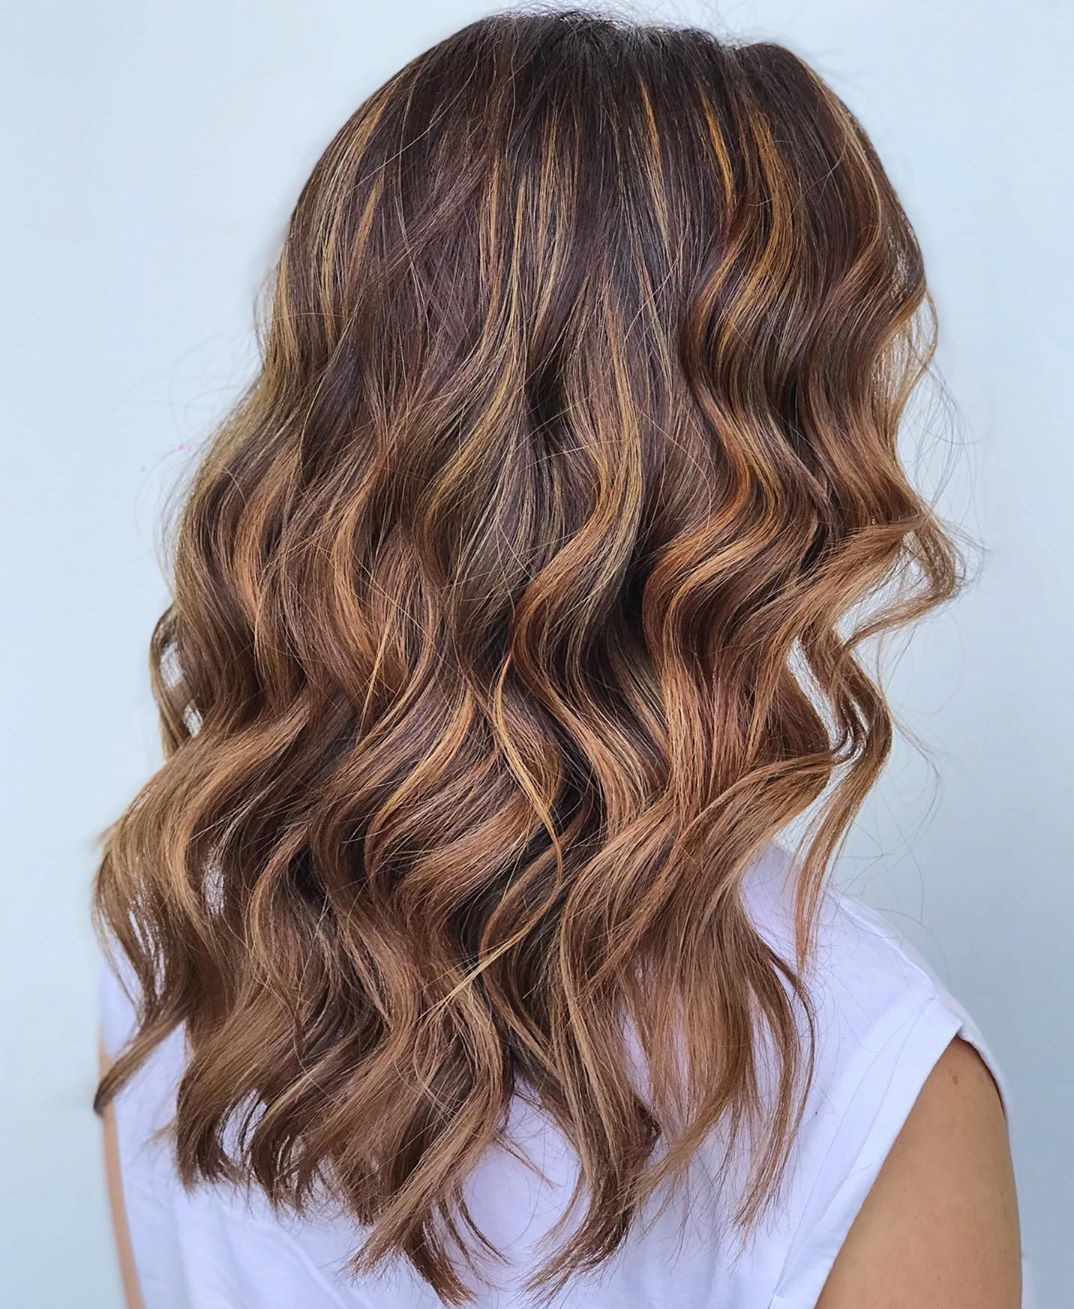 Chocolate and Caramel Brown Hair Highlights